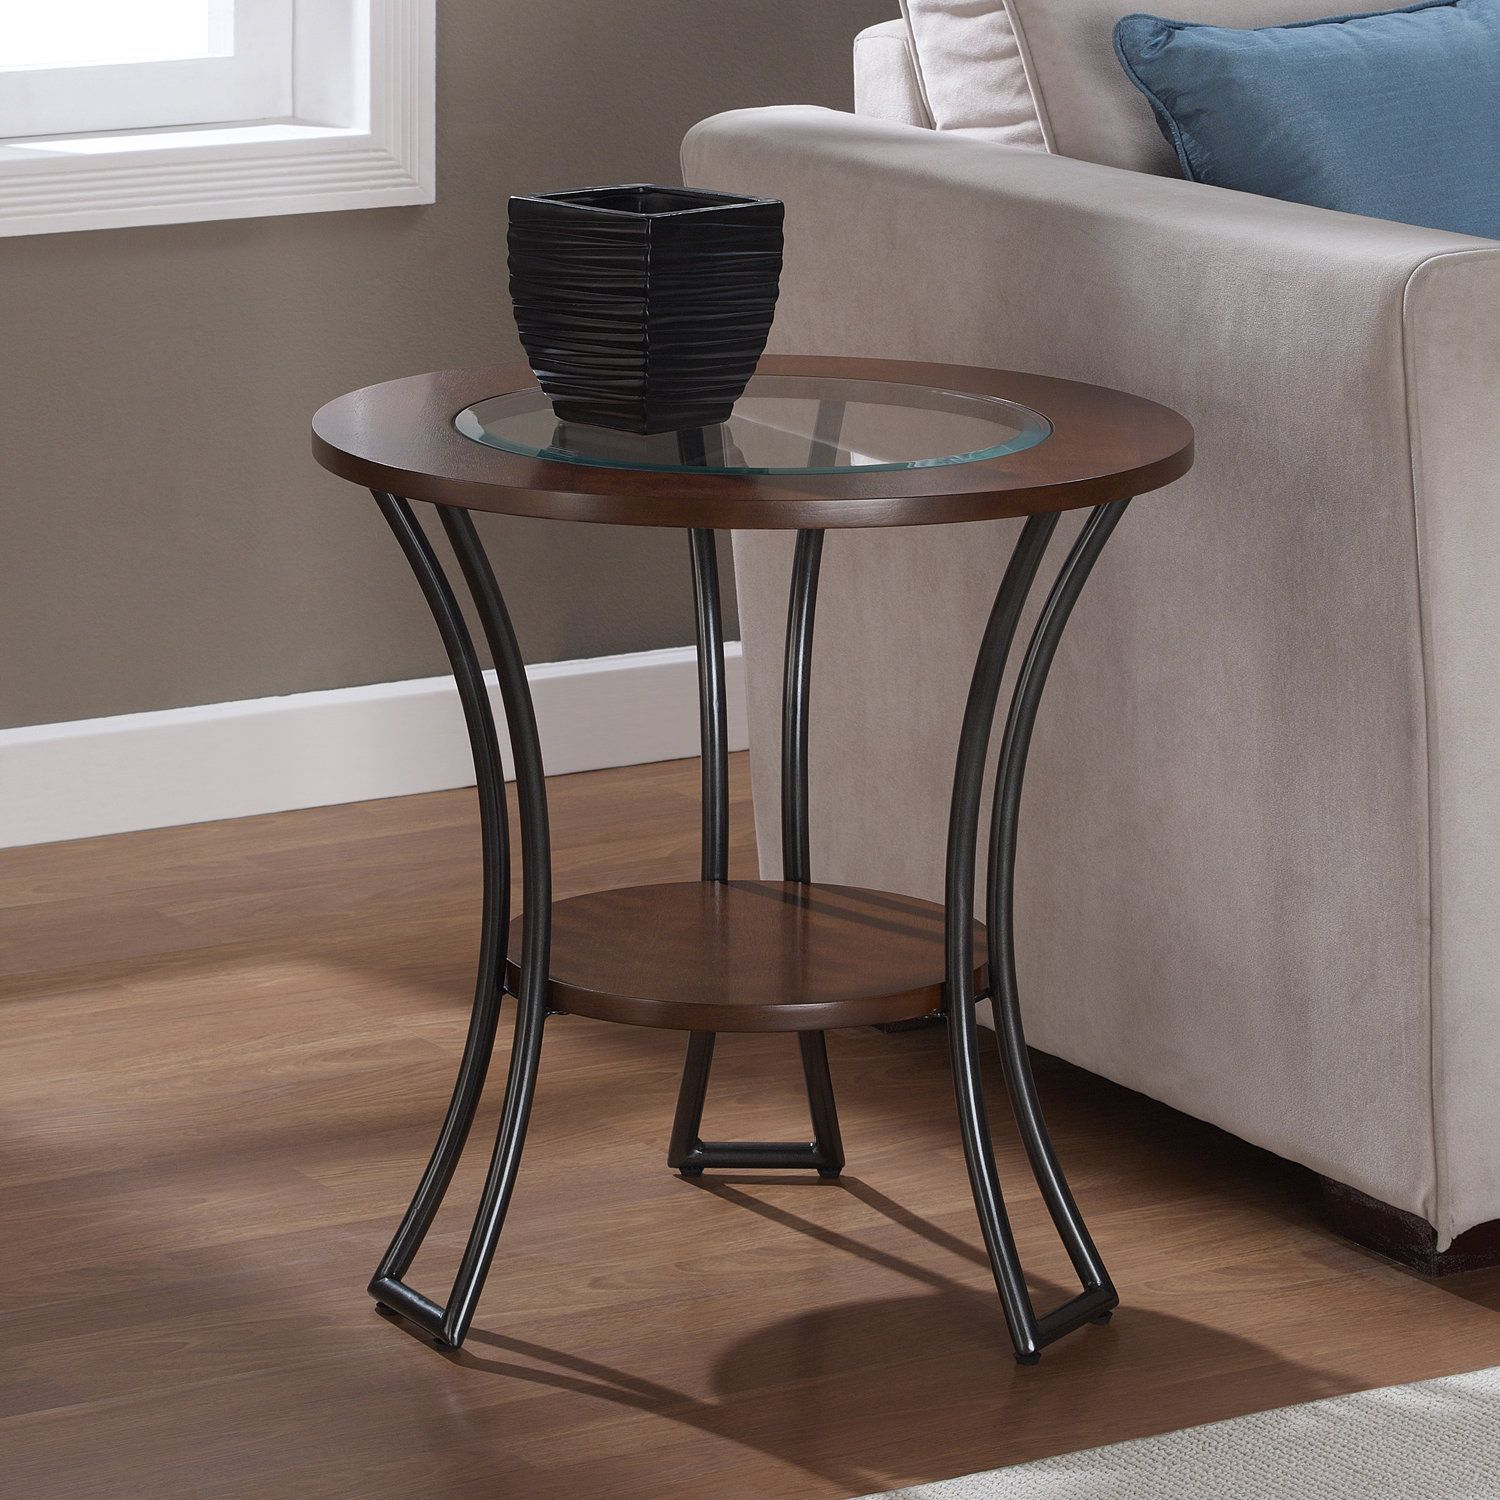 Overstock Com Online Shopping Bedding Furniture Electronics Jewelry Clothing More Glass End Tables Glass Top End Tables Living Room Furniture Tables